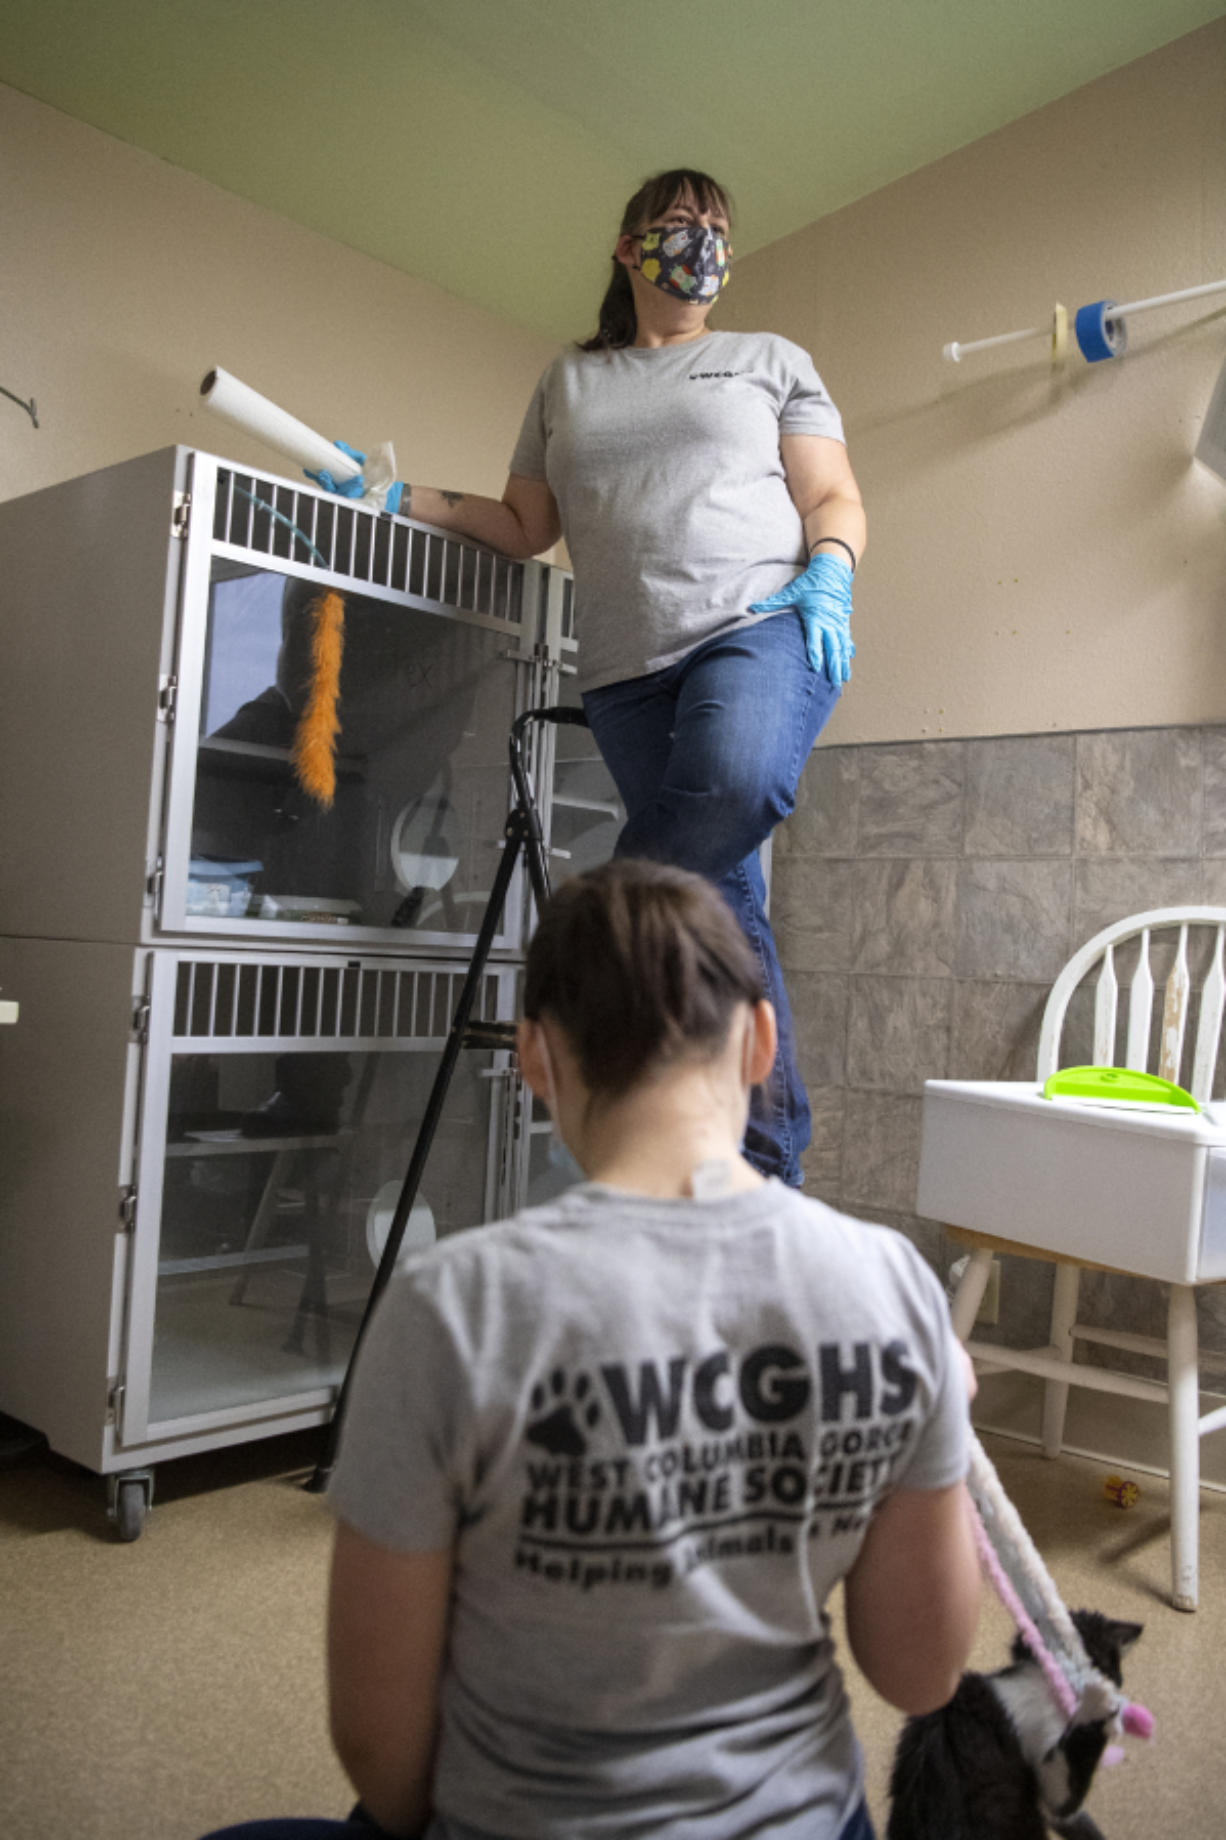 Volunteer Pamela Sanseri speaks to a reporter while her daughter, Gabrielle, plays with a cat in the intake room designated for new feline additions to the facility at the West Columbia Gorge Humane Society in Washougal.